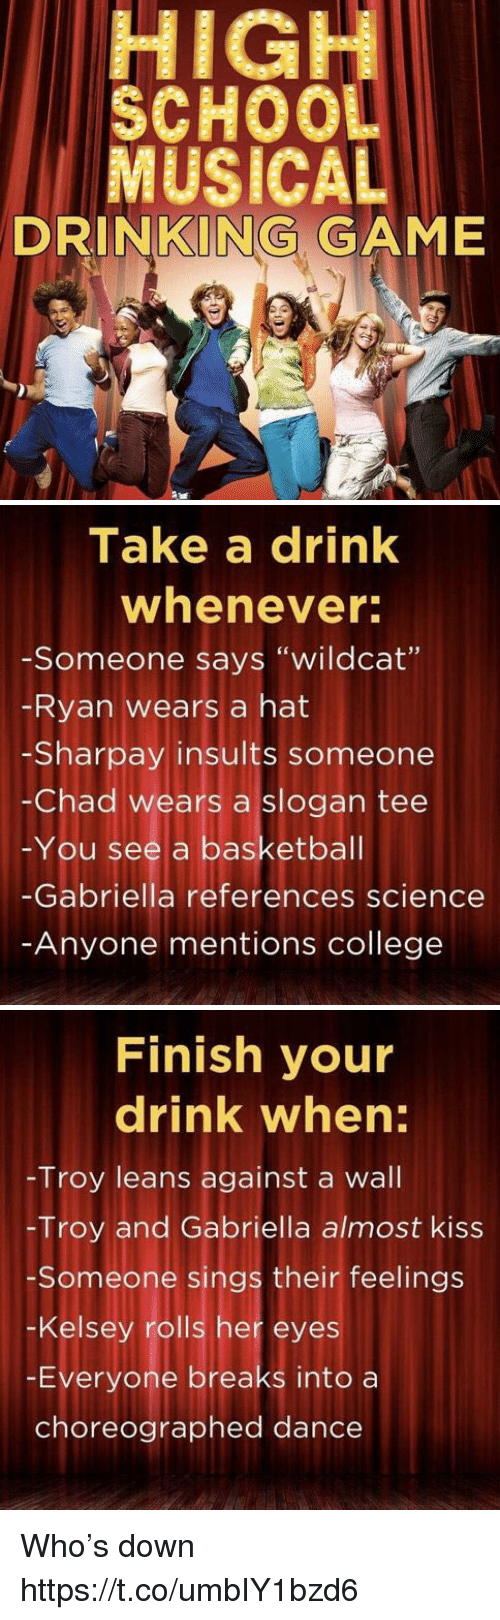 "sharpay: HIGH  SCHOO  MUSICAL  DRINKING GAME   Take a drink  whenever  -Someone says ""wildcat""  Ryan wears a hat  -Sharpay insults someone  -Chad wears a slogan tee  -You see a basketbal  -Gabriella references science  Anyone mentions college   Finish your  drink when:  Troy leans against a wall  -Troy and Gabriella almost kiss  Someone sings their feelings  -Kelsey rolls her eyes  -Everyone breaks into a  choreographed dance Who's down https://t.co/umbIY1bzd6"